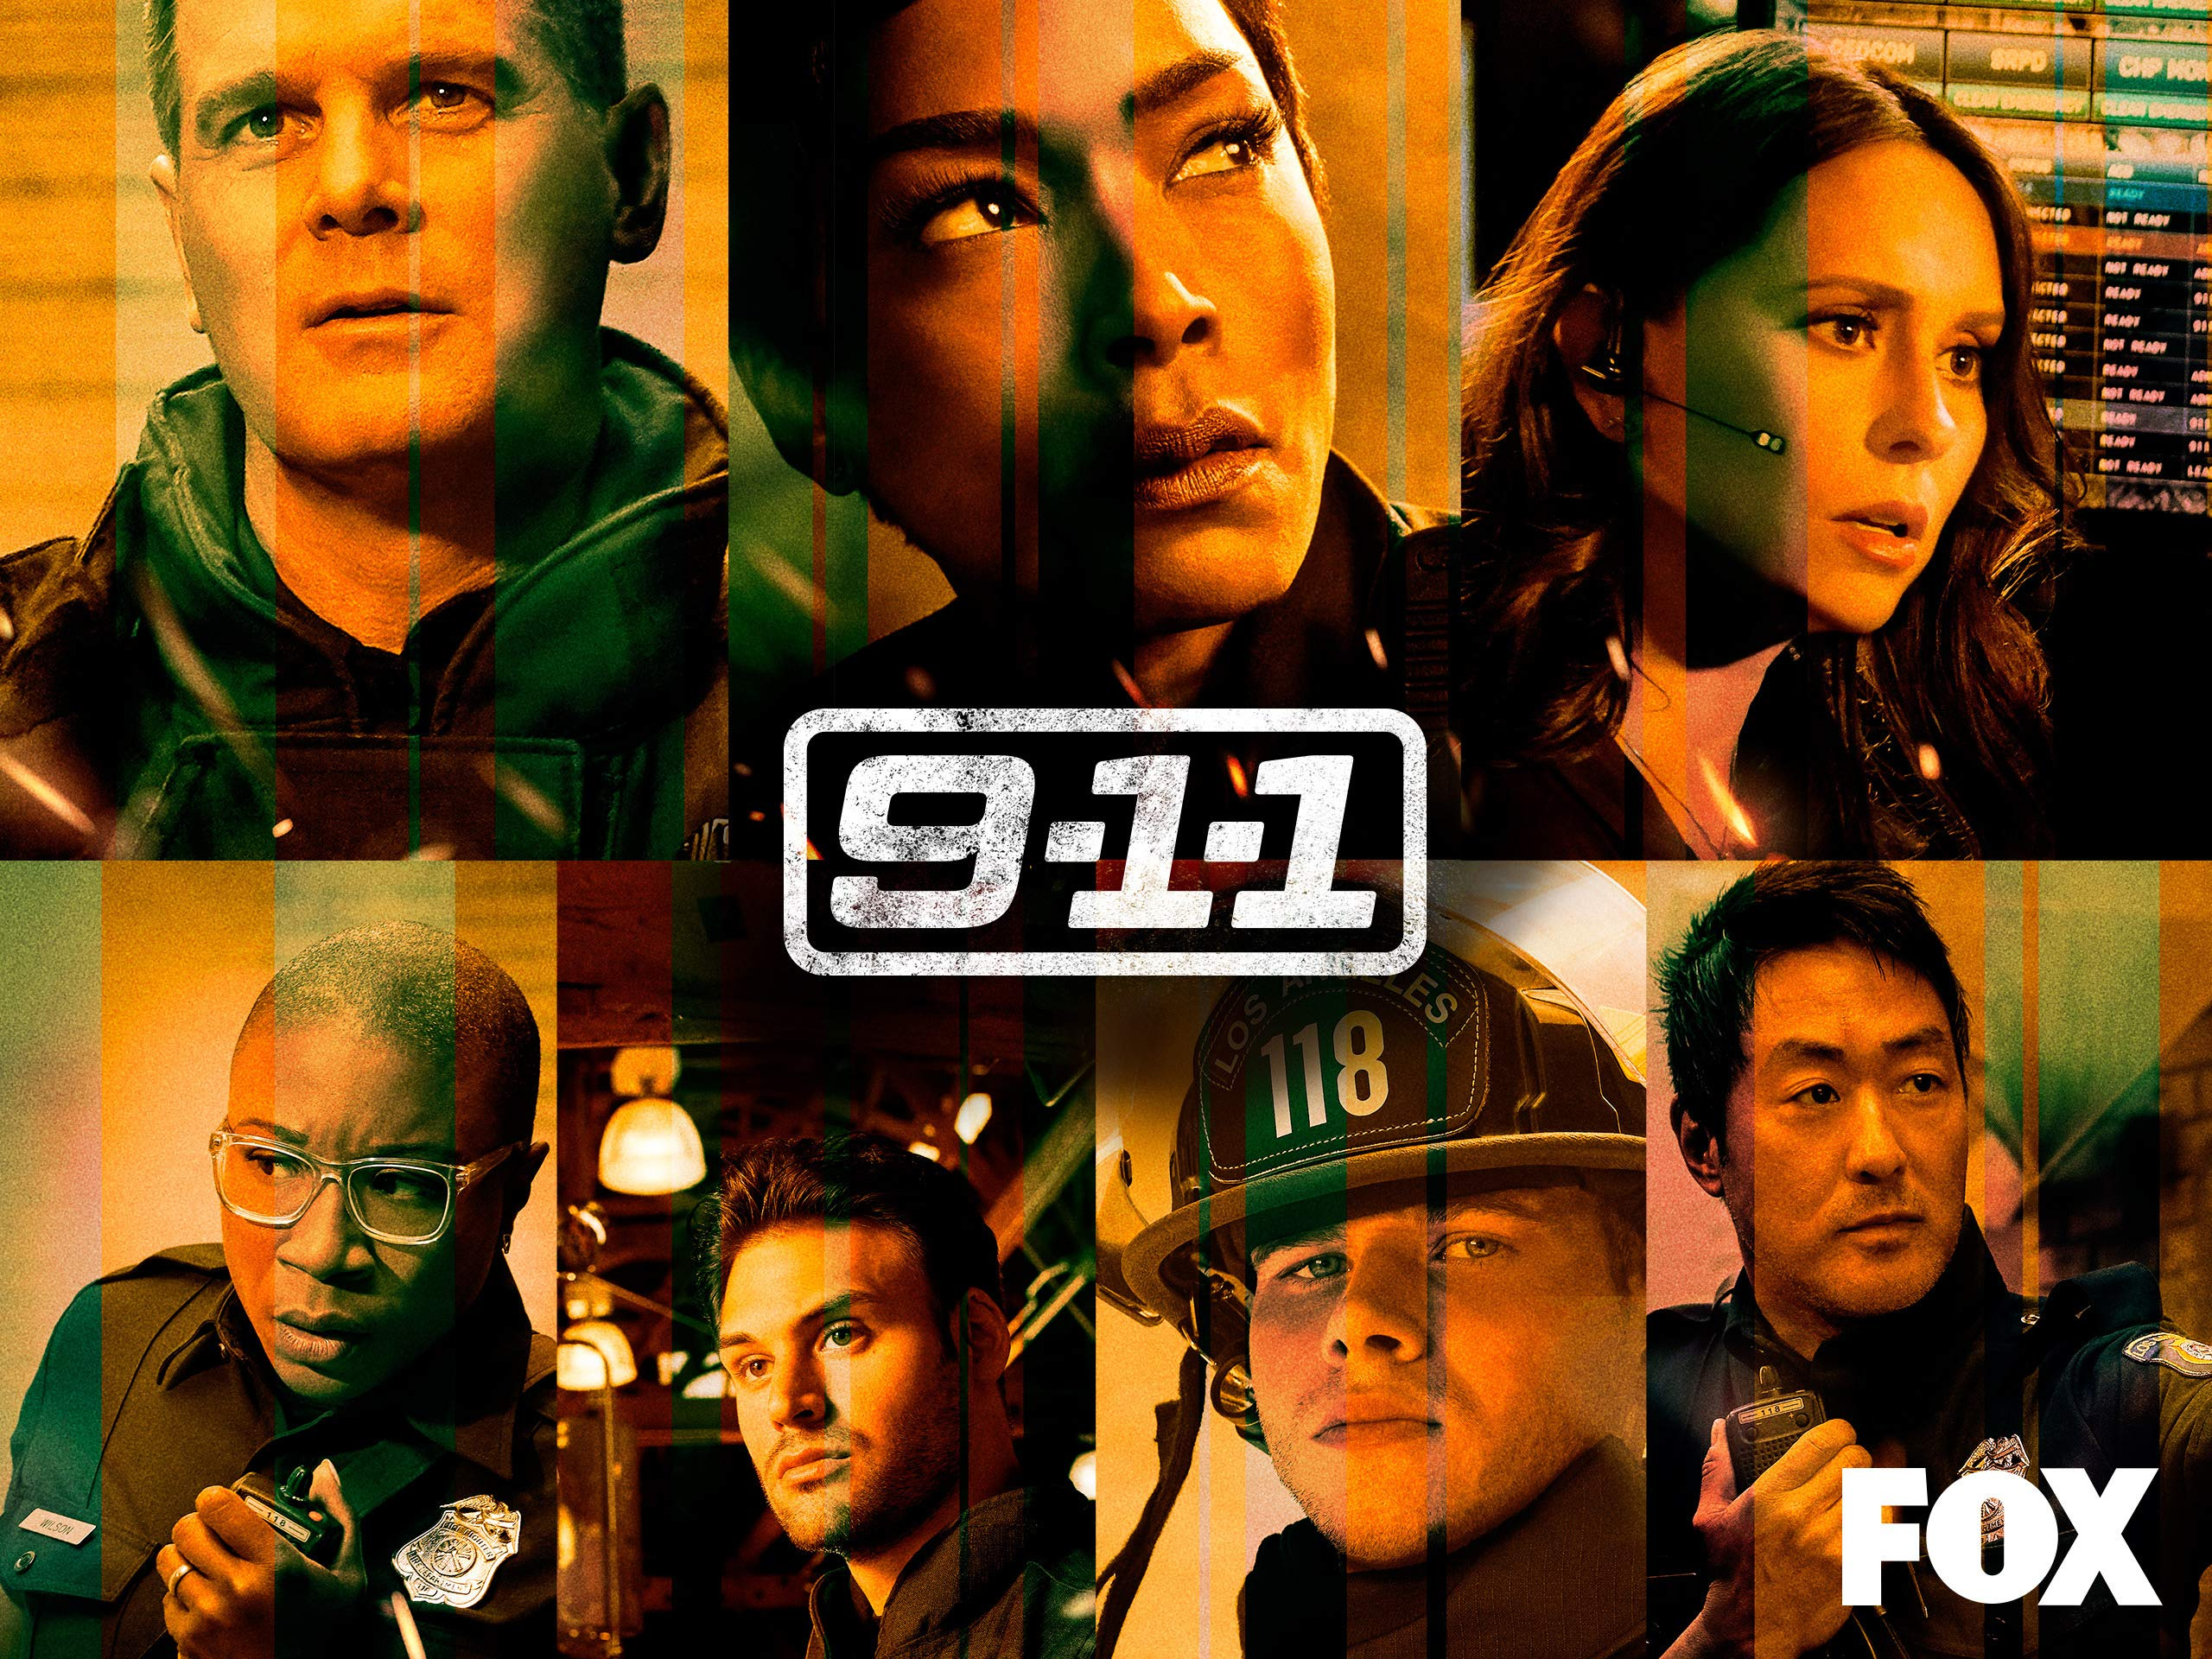 9 1 1 season 2 episode 10 watch online free